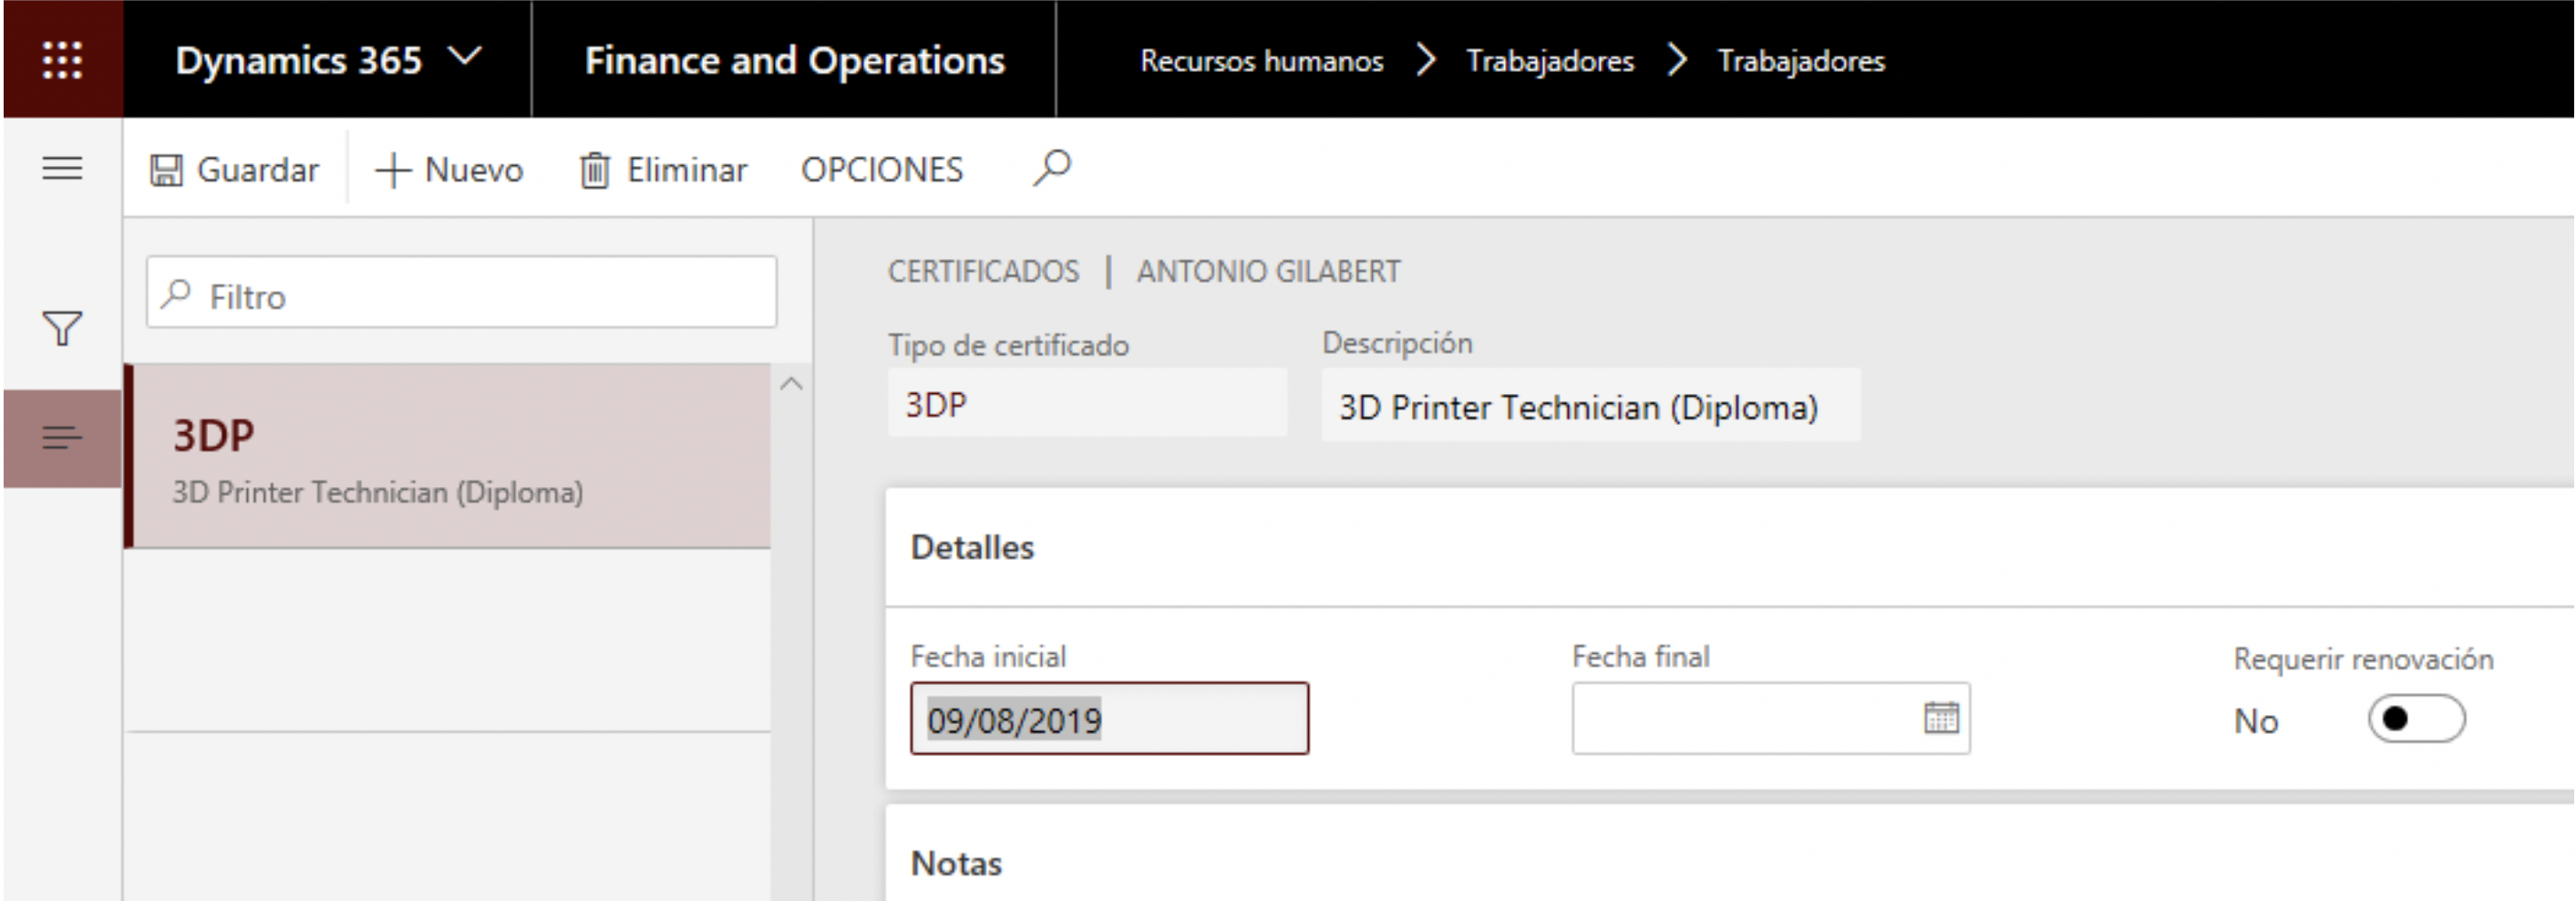 ERD - Dynamics365 Finance Operations - Gestión Activos ERP - 2.2